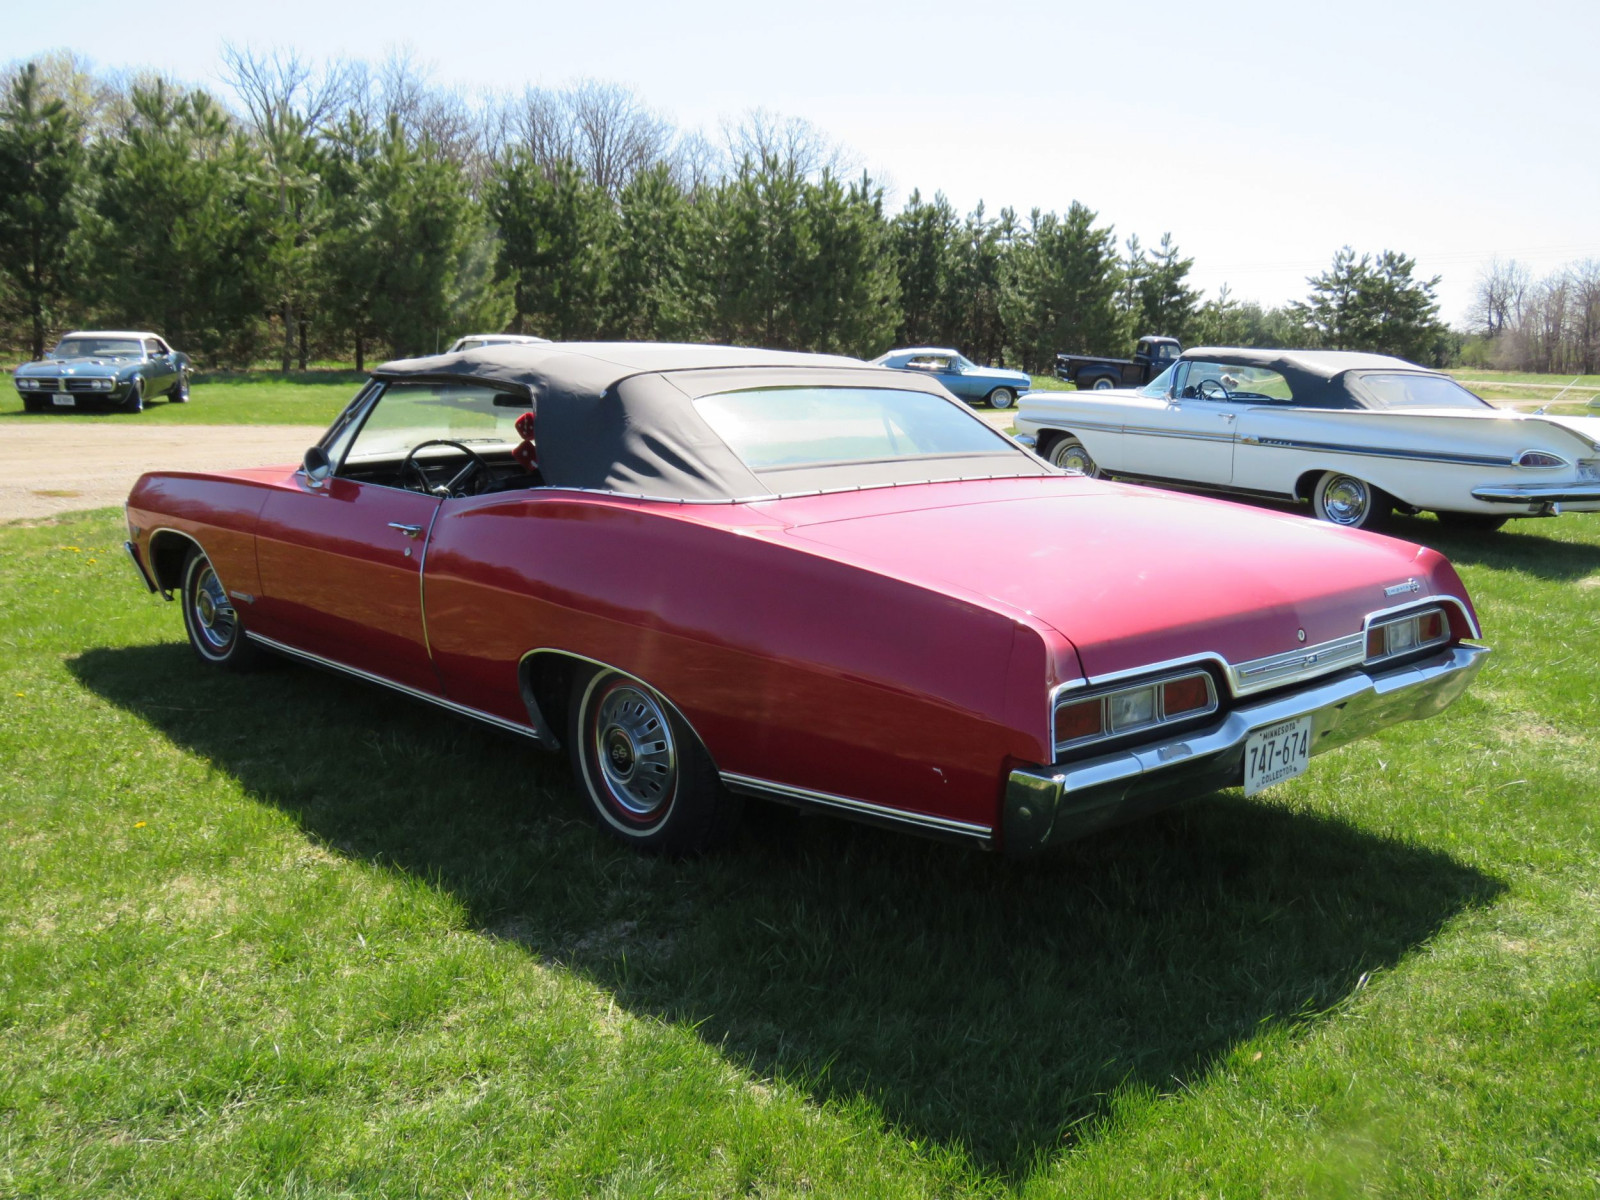 1967 Chevrolet Impala SS convertible - Image 8